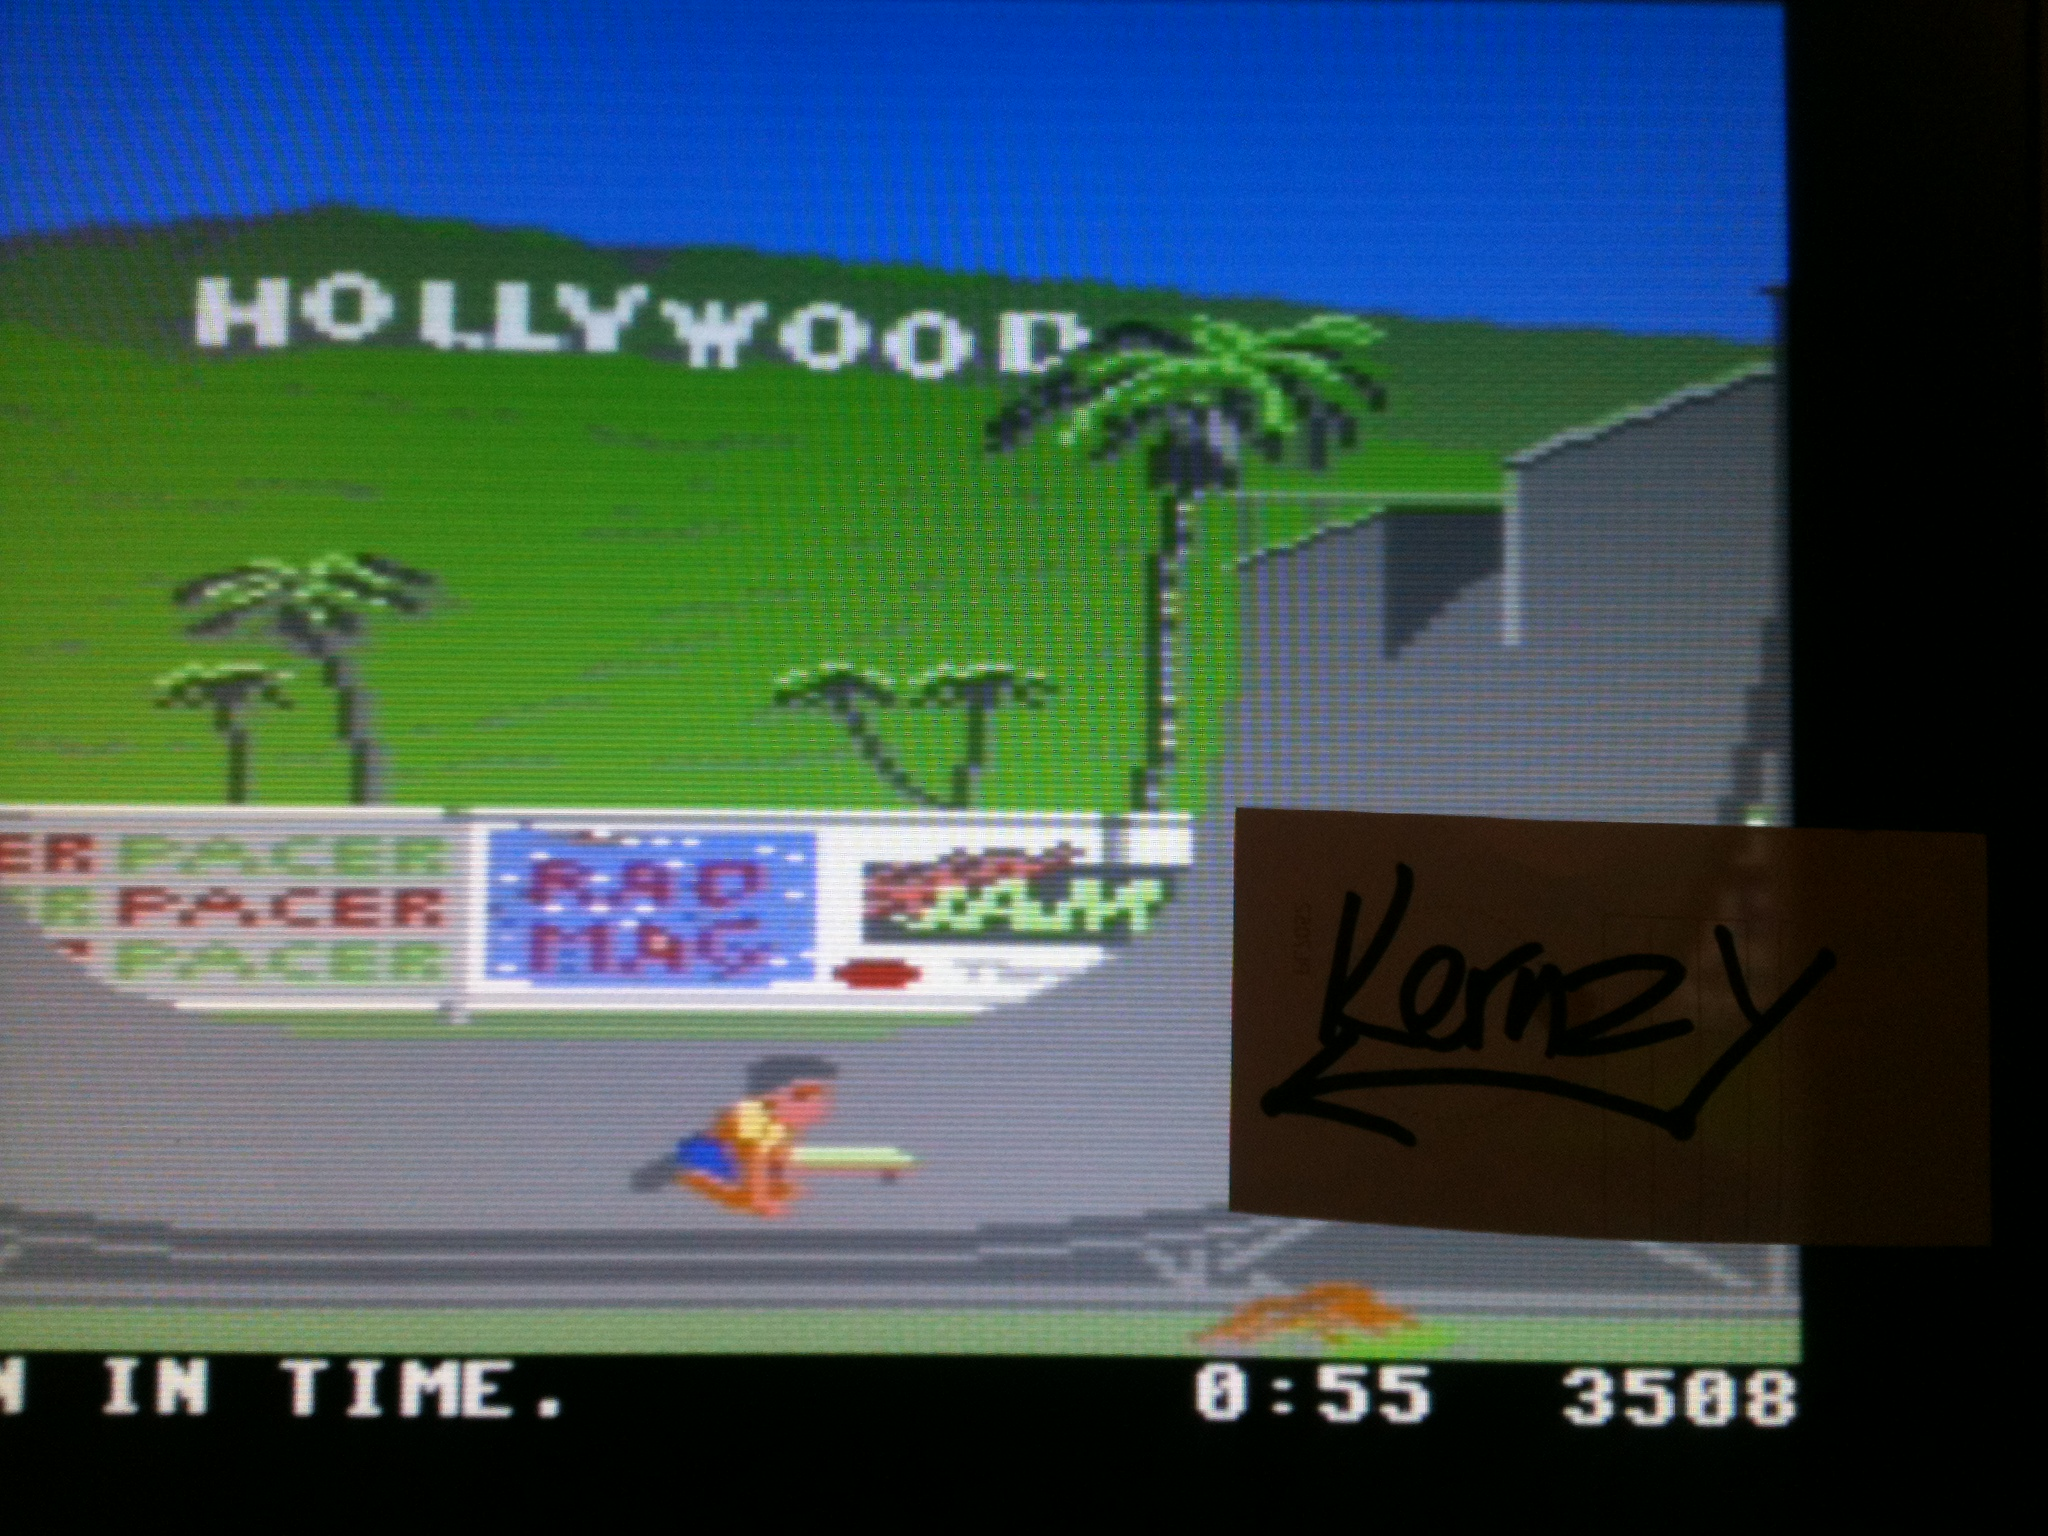 kernzy: California Games: Half Pipe (Commodore 64 Emulated) 3,508 points on 2015-05-08 15:18:13